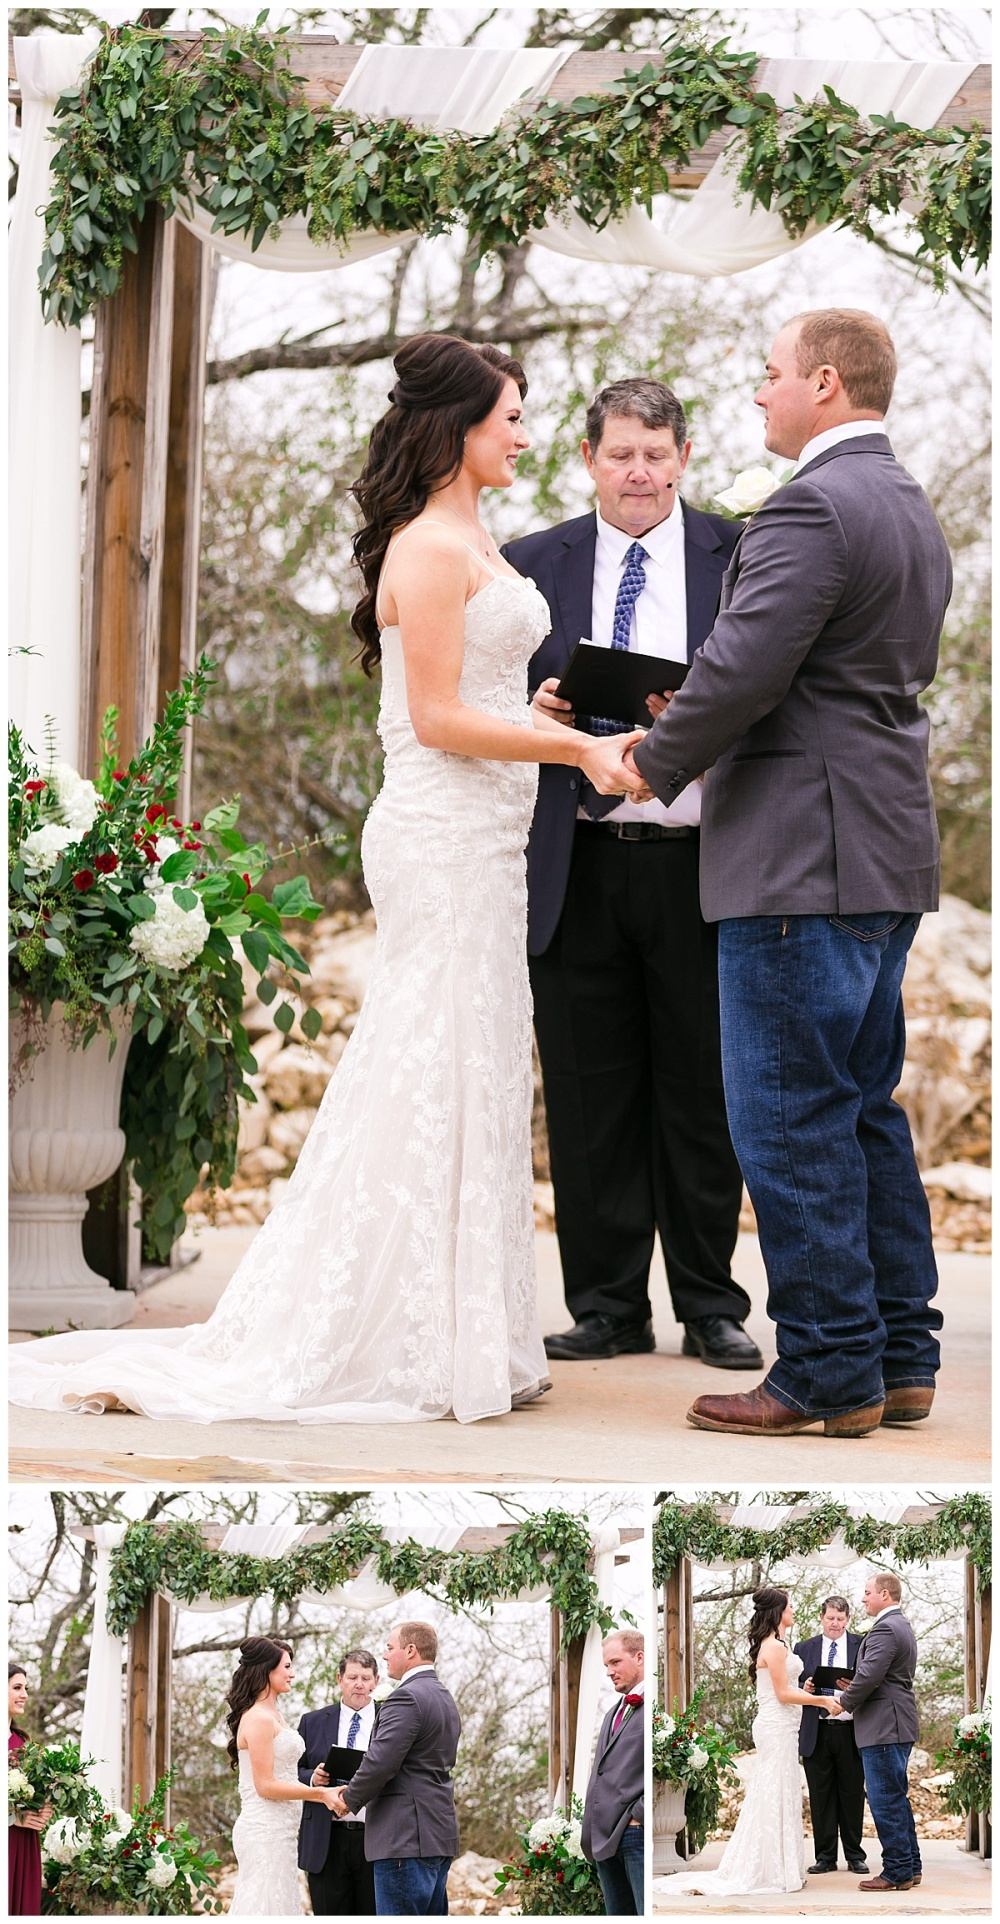 Carly-Barton-Photography-Geronimo-Oaks-Wedding-Venue-Texas-Hill-Country-Ronnie-Sarah_0099.jpg